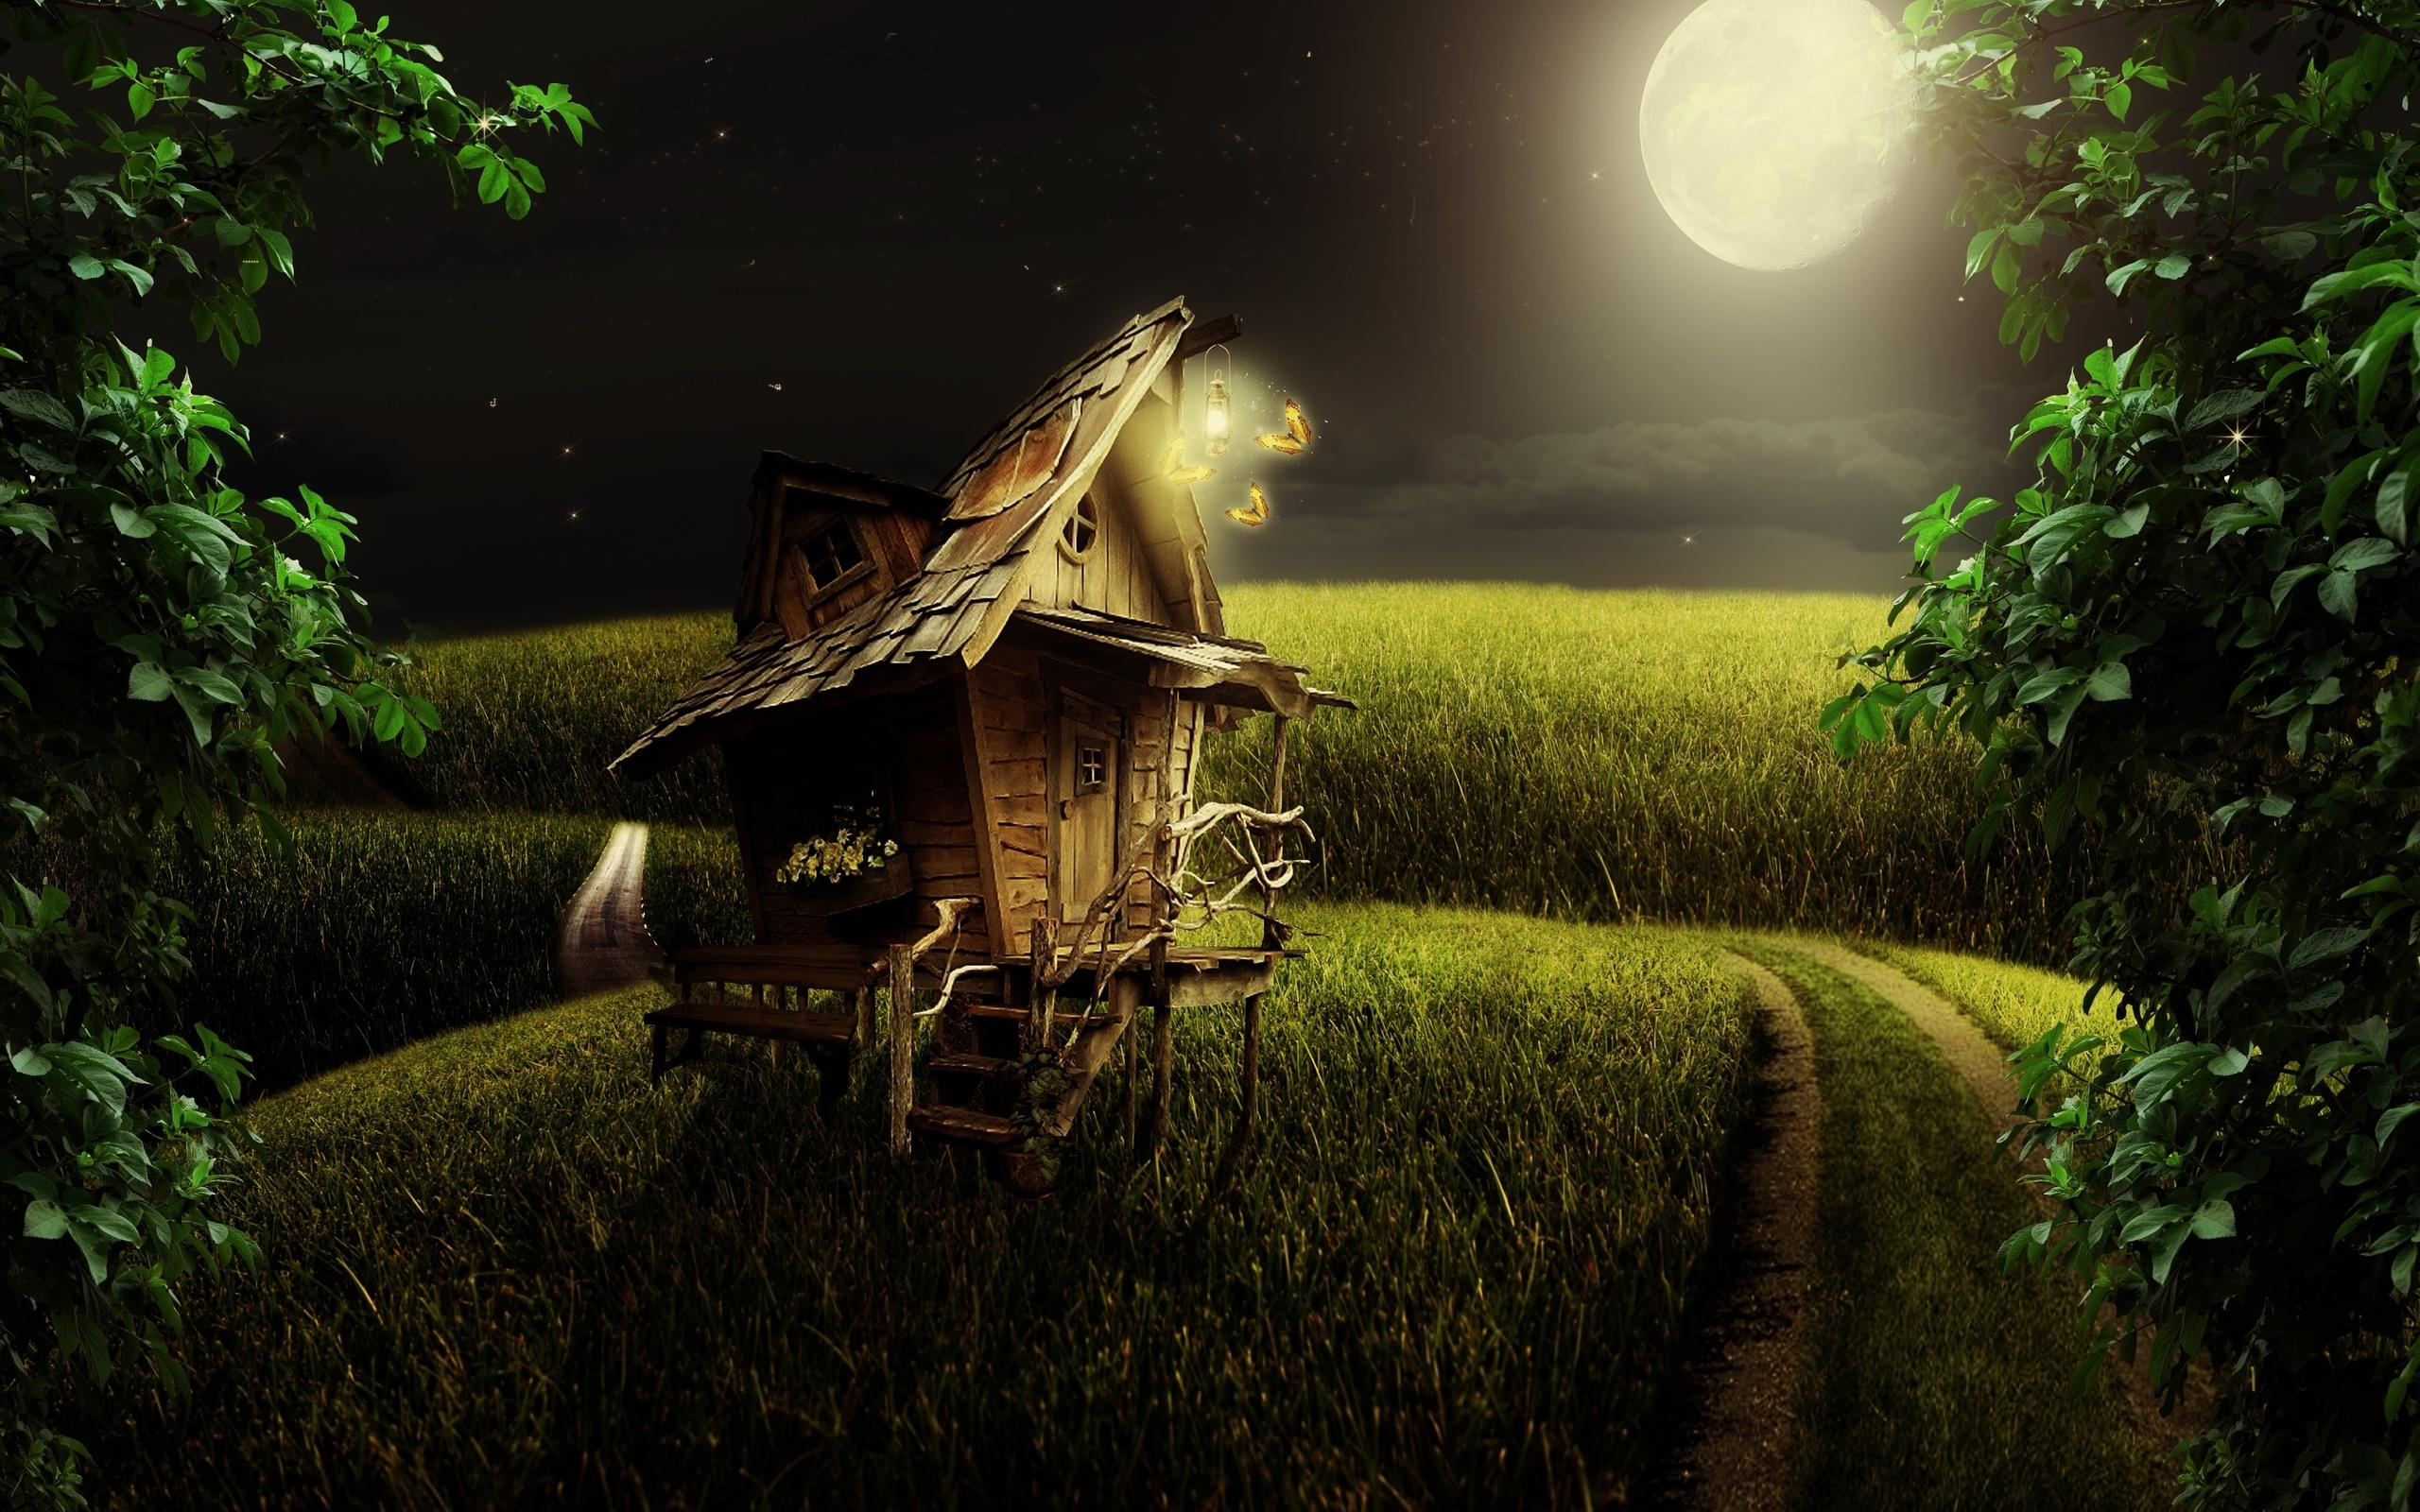 Epic 3d Movie Wallpapers Moonlight Field House Wallpapers Hd Desktop And Mobile